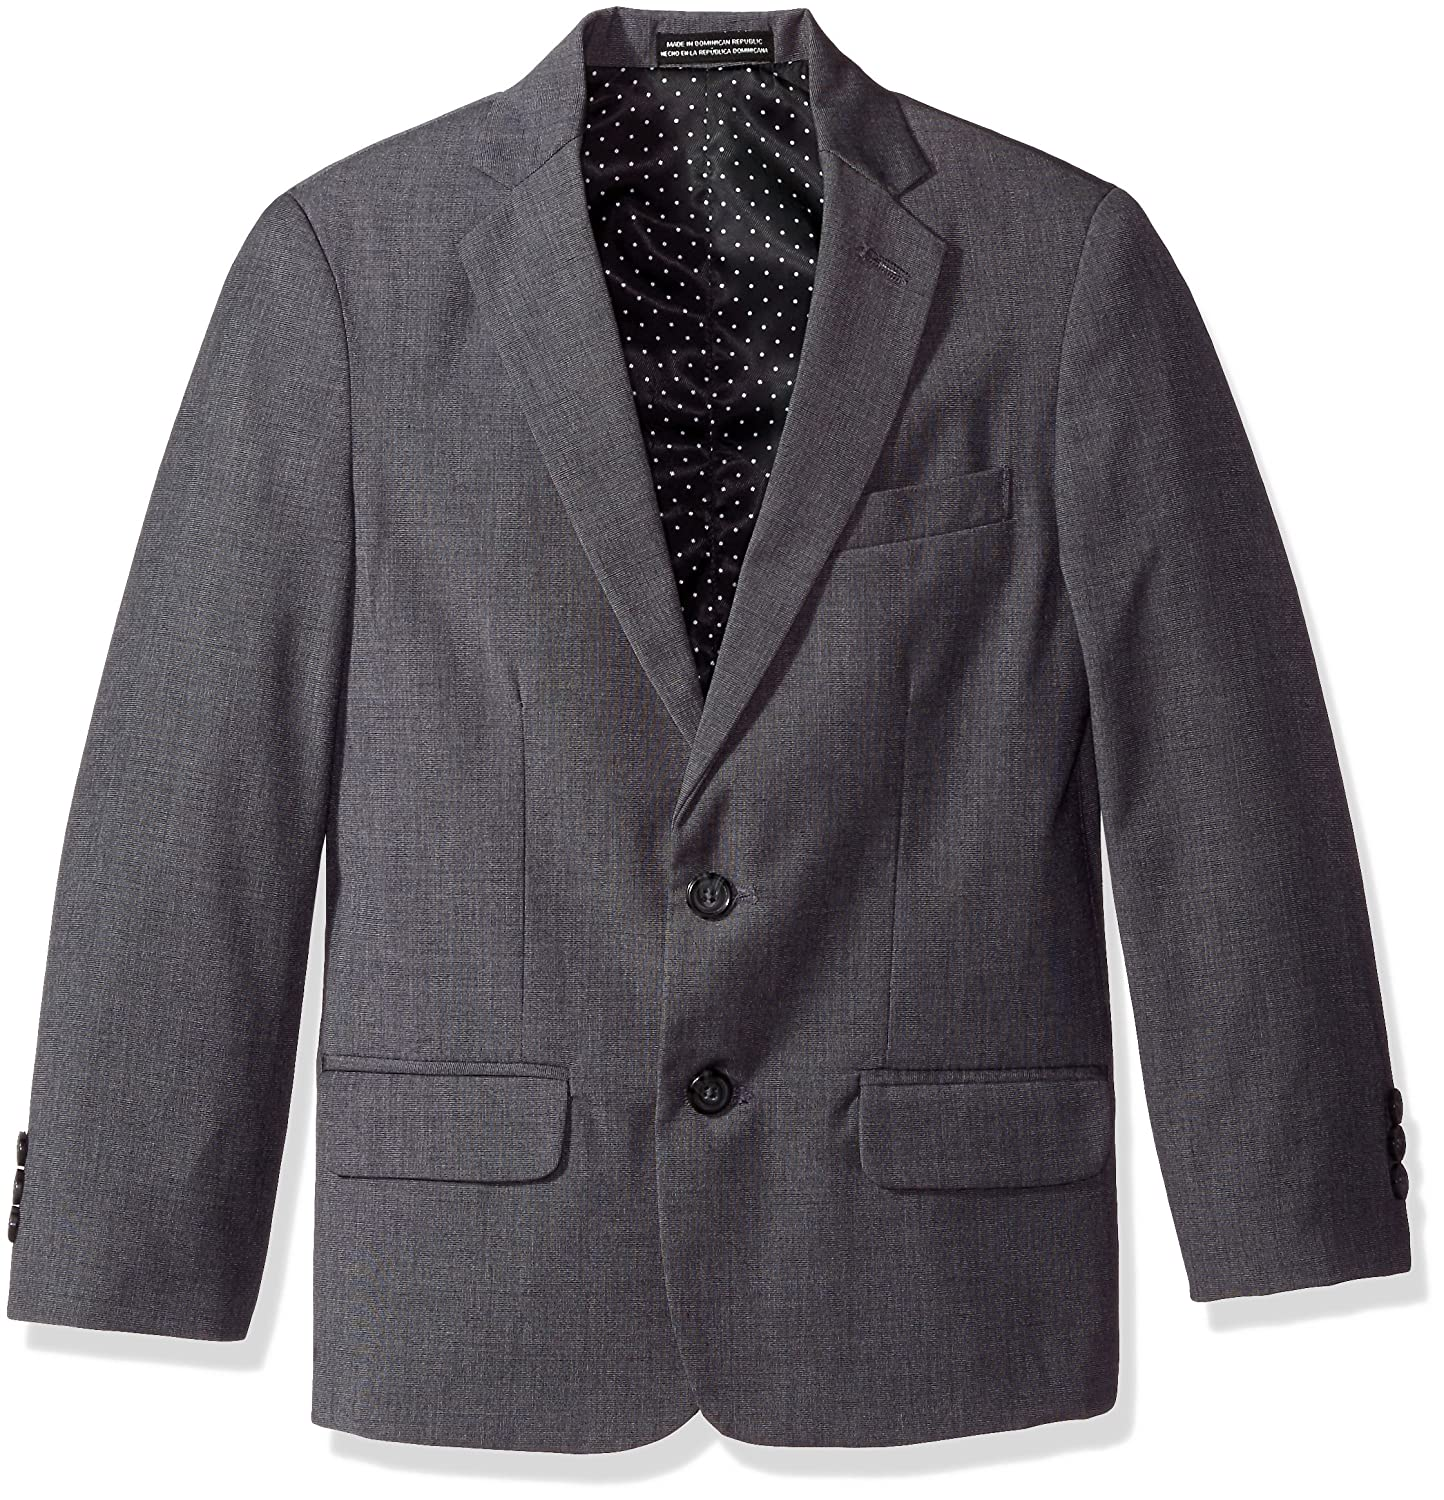 Van Heusen Boys' Big Two Tone Jacket